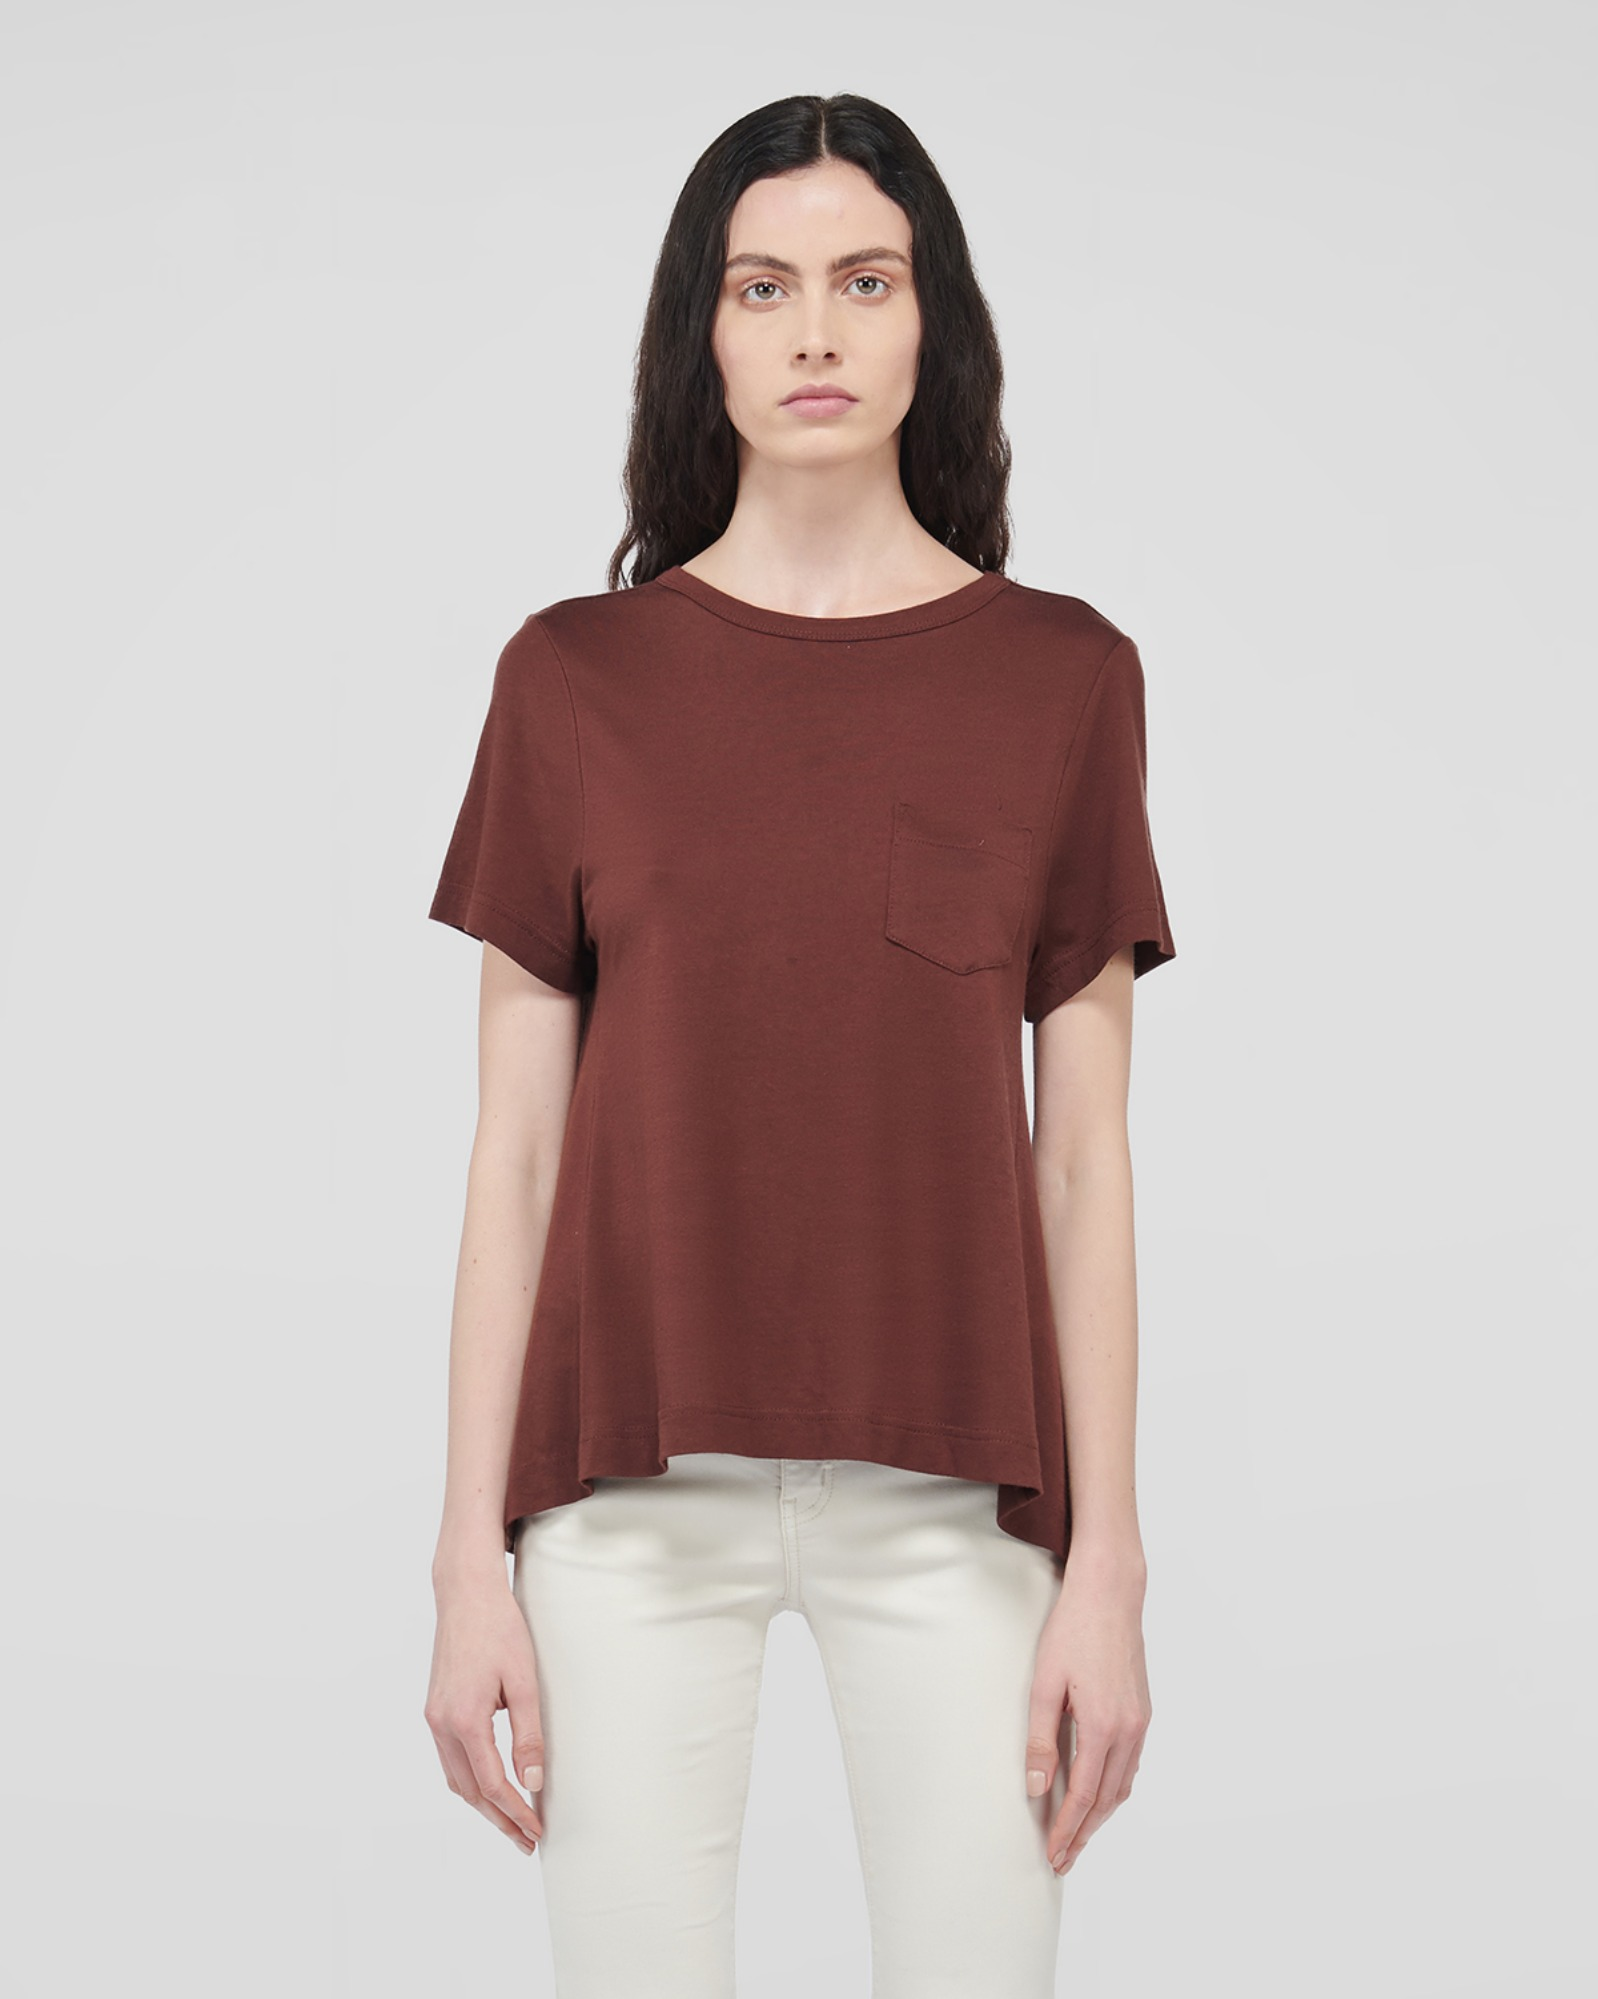 VIRTUE SUPIMA T-SHIRTS TOFFEE BROWN